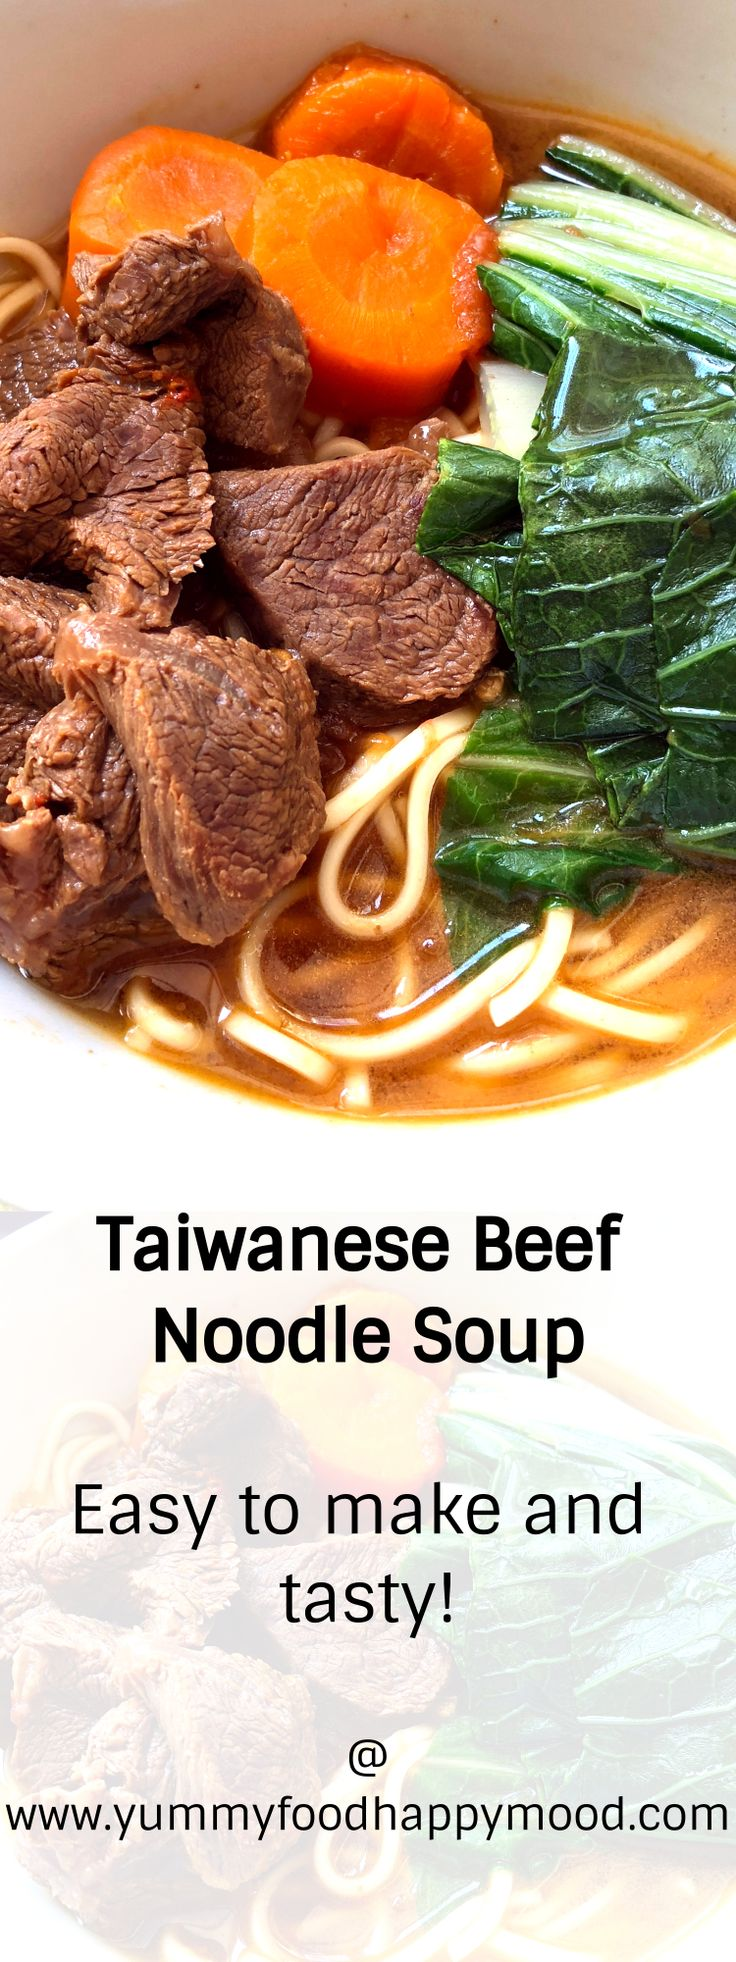 Make delicious Taiwanese Beef Noodle Soup at home. Super tasty!